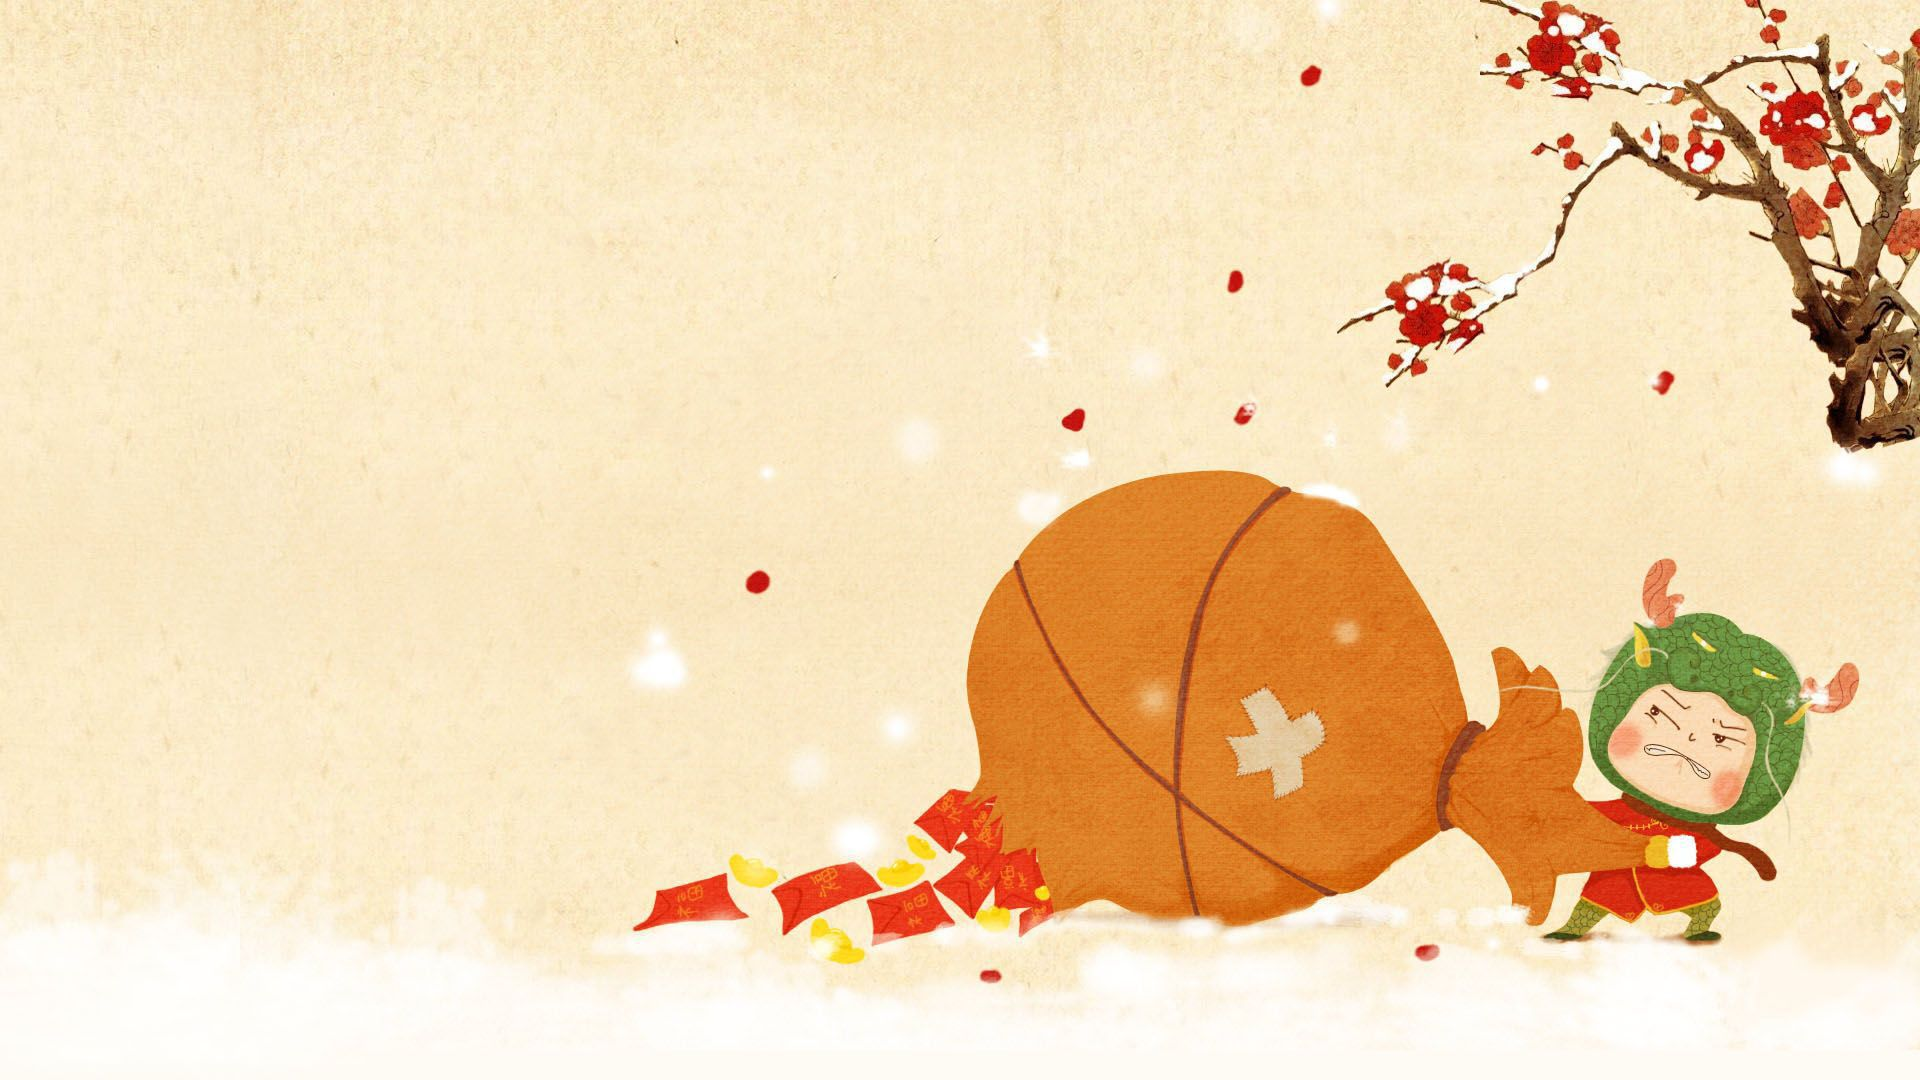 1920x1080 wallpaper hd for chinese new year backgrounds in cartoon pics